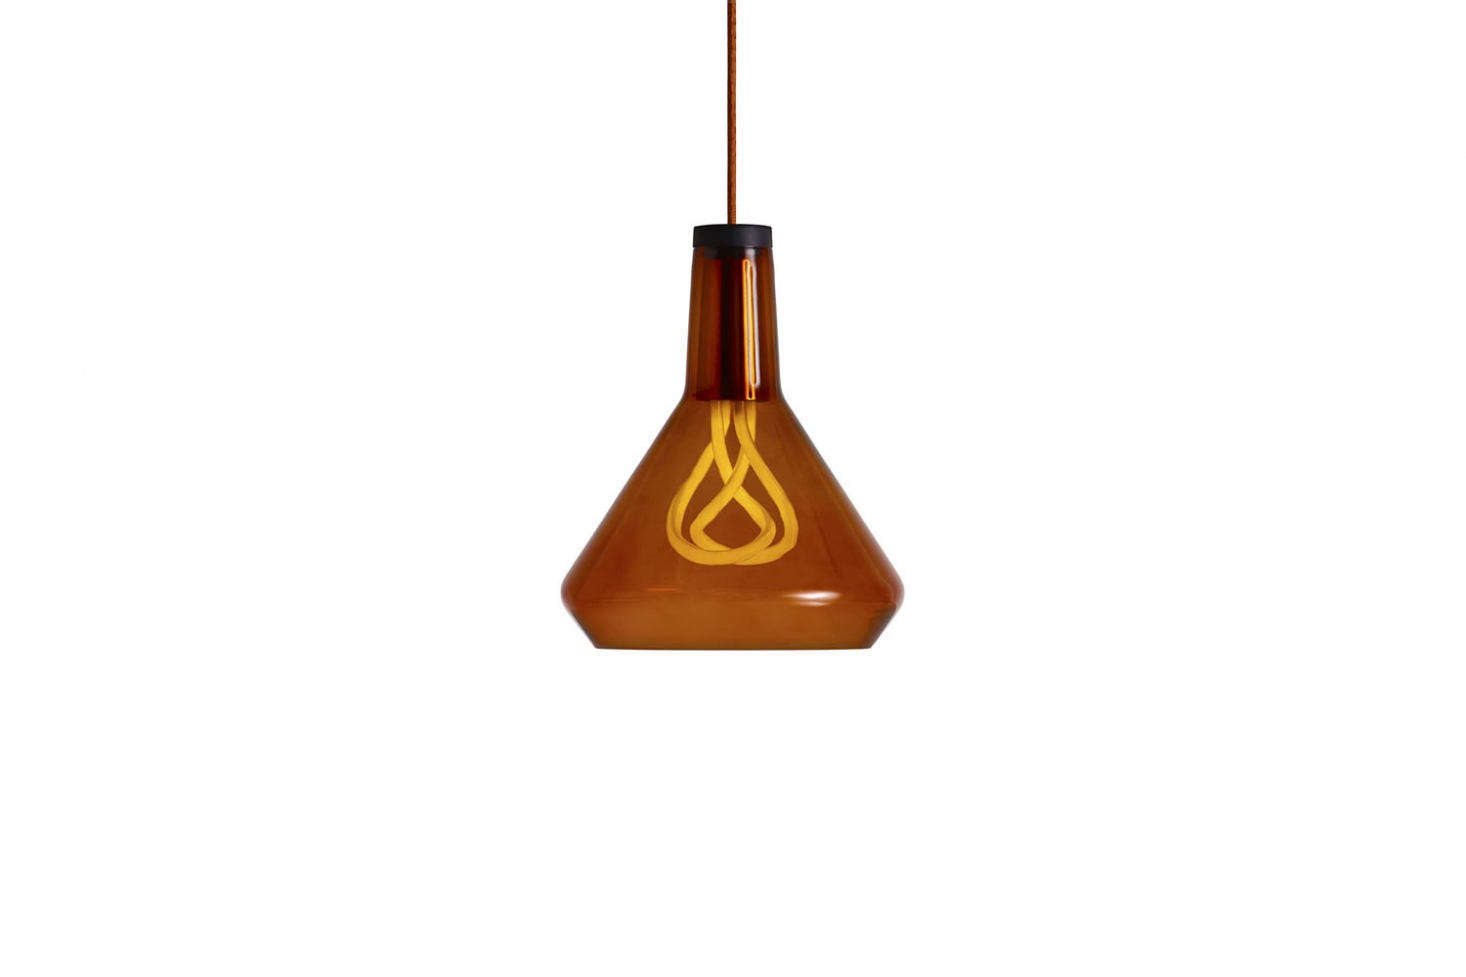 The Plumen Drop Top Pendant comes in amber (shown), black, and white glass; $161.50 to $170 at Lumens. For more, see Naked No More: Lampshades for Plumen Bulbs.